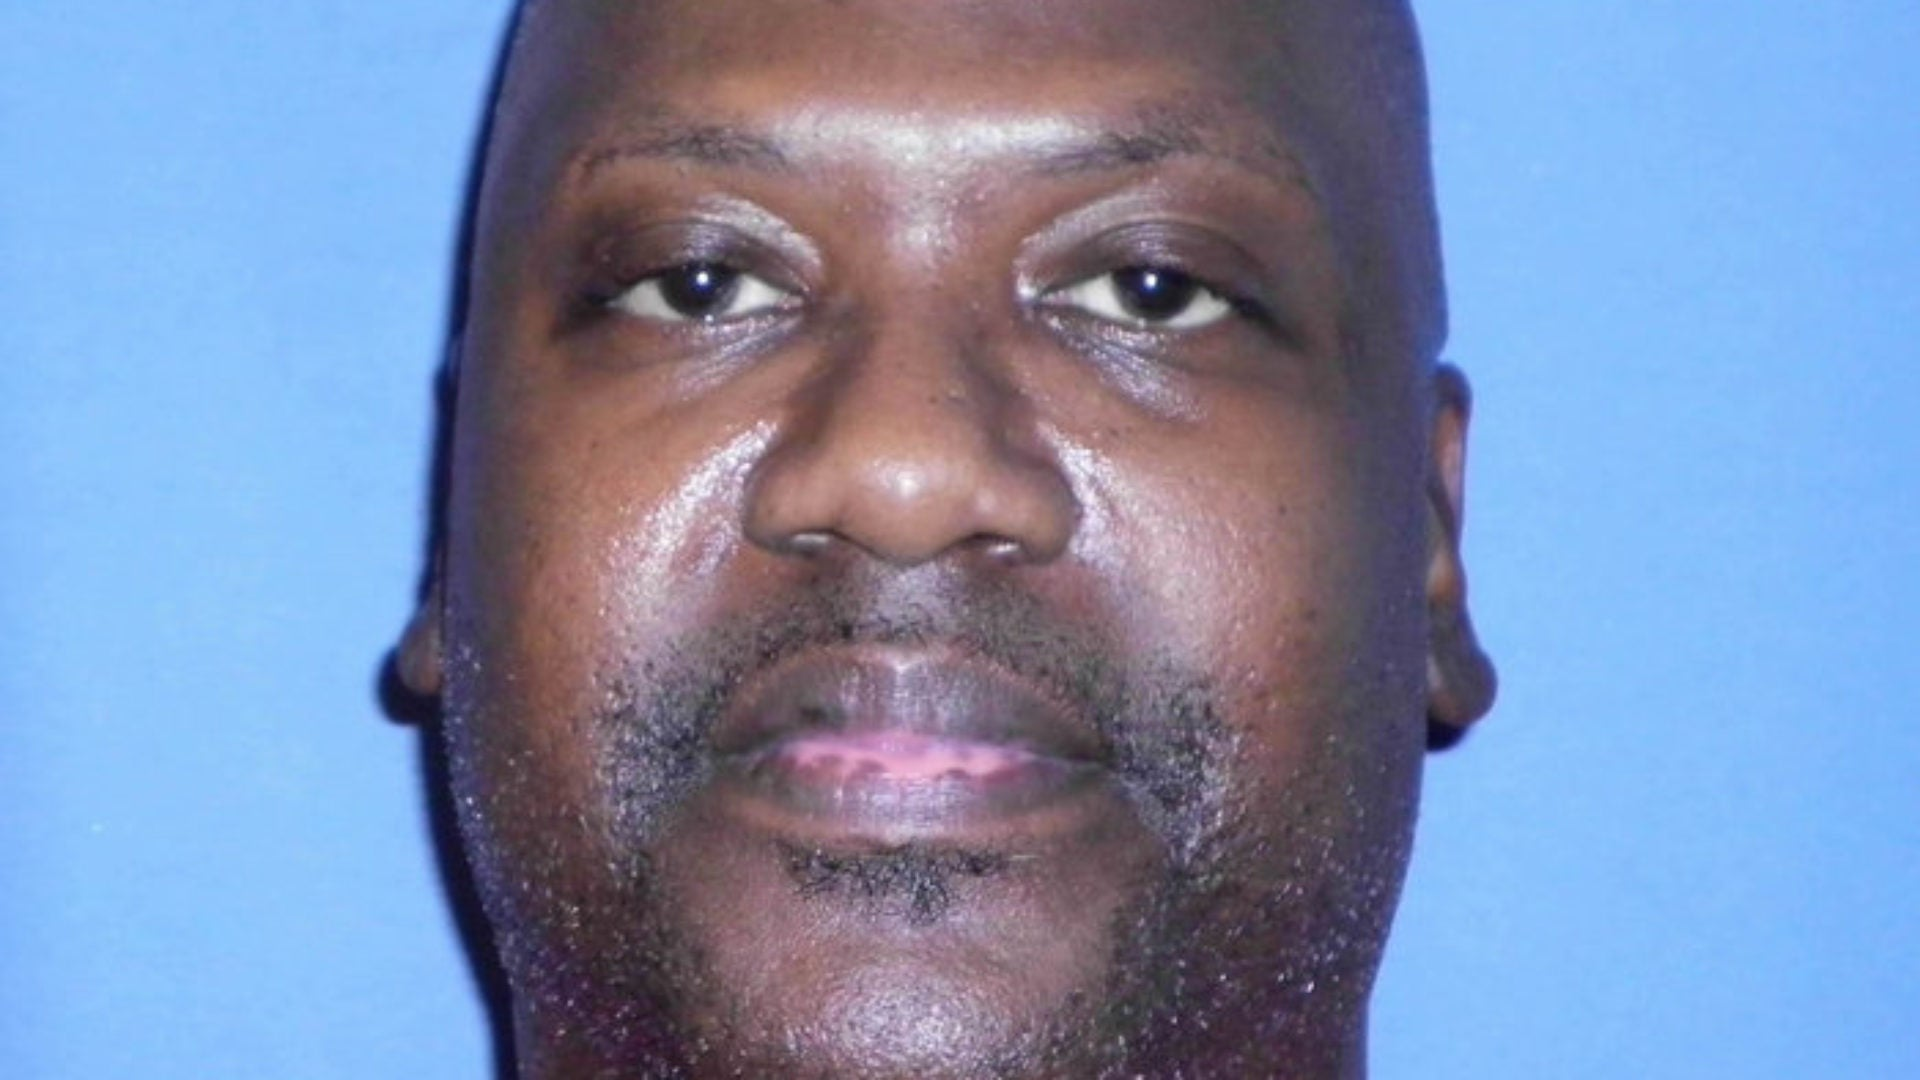 SCOTUS Strikes Down Murder Conviction Of Mississippi Black Man, Finding Racial Bias In Jury Selection